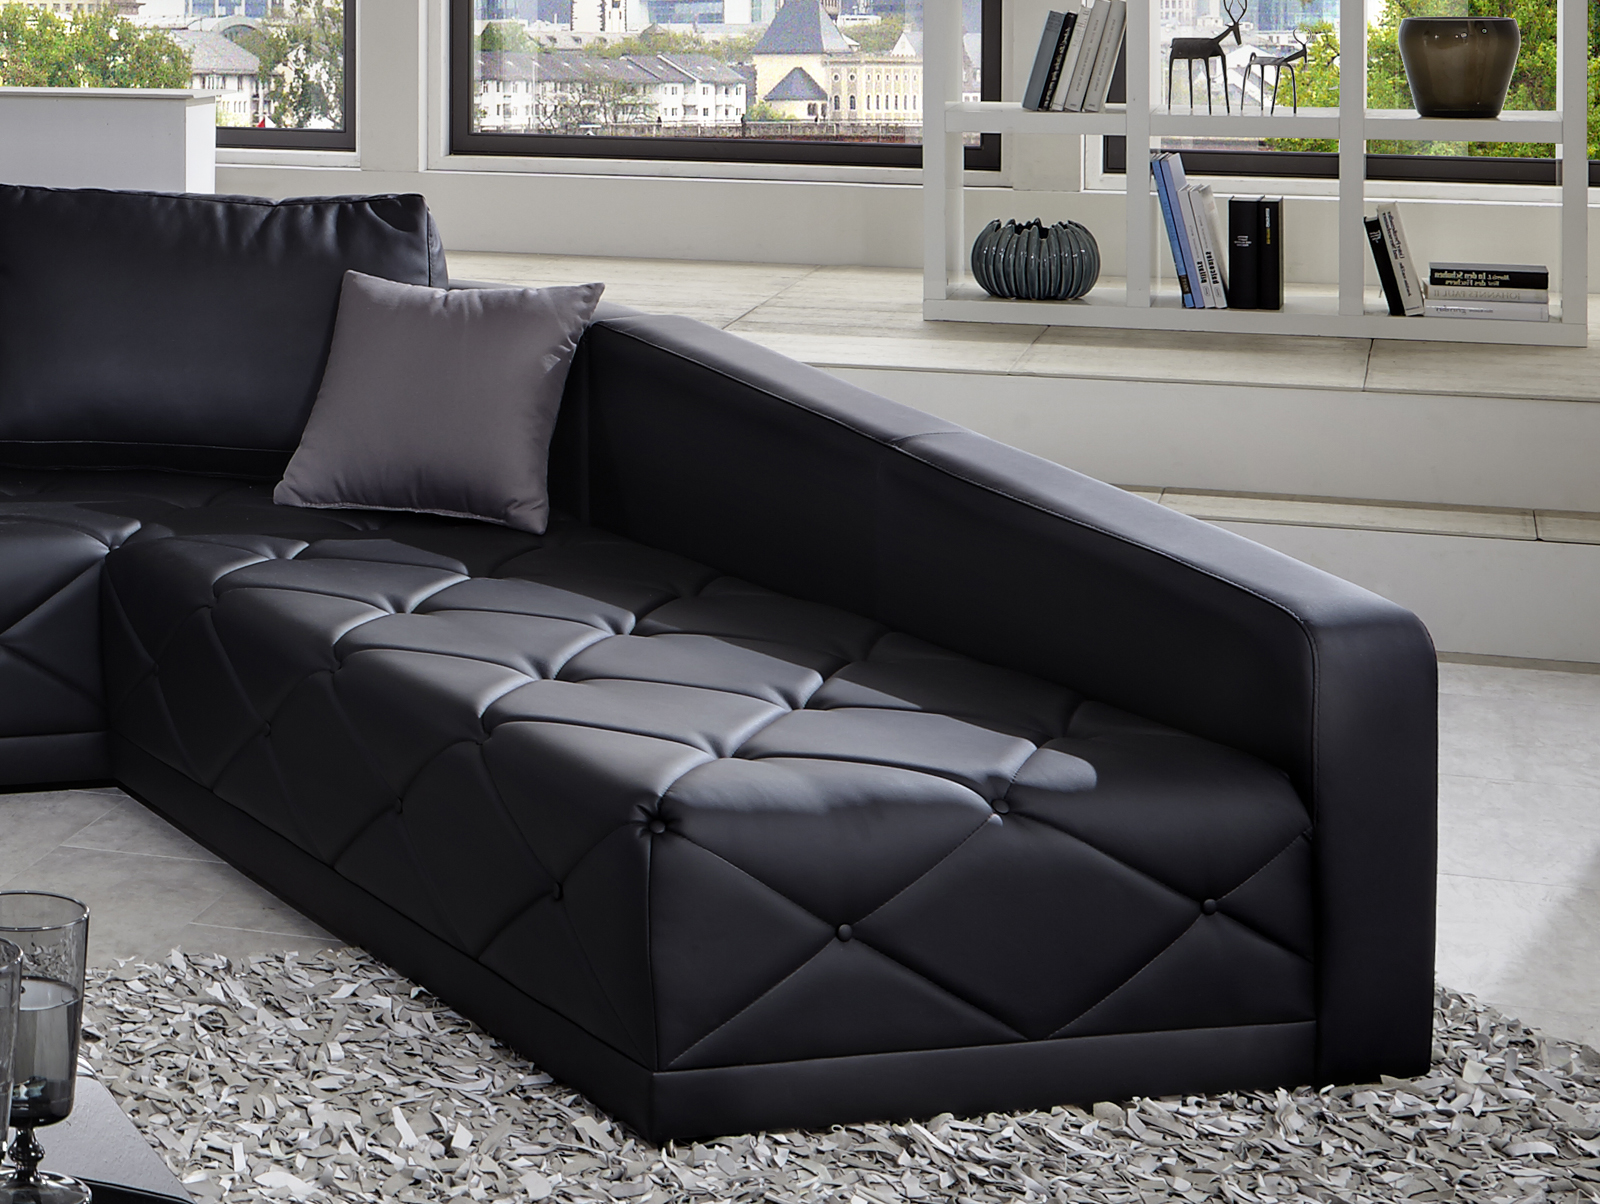 sam design sofa schwarz nero wohnlandschaft 380 x 290 cm bestellware. Black Bedroom Furniture Sets. Home Design Ideas